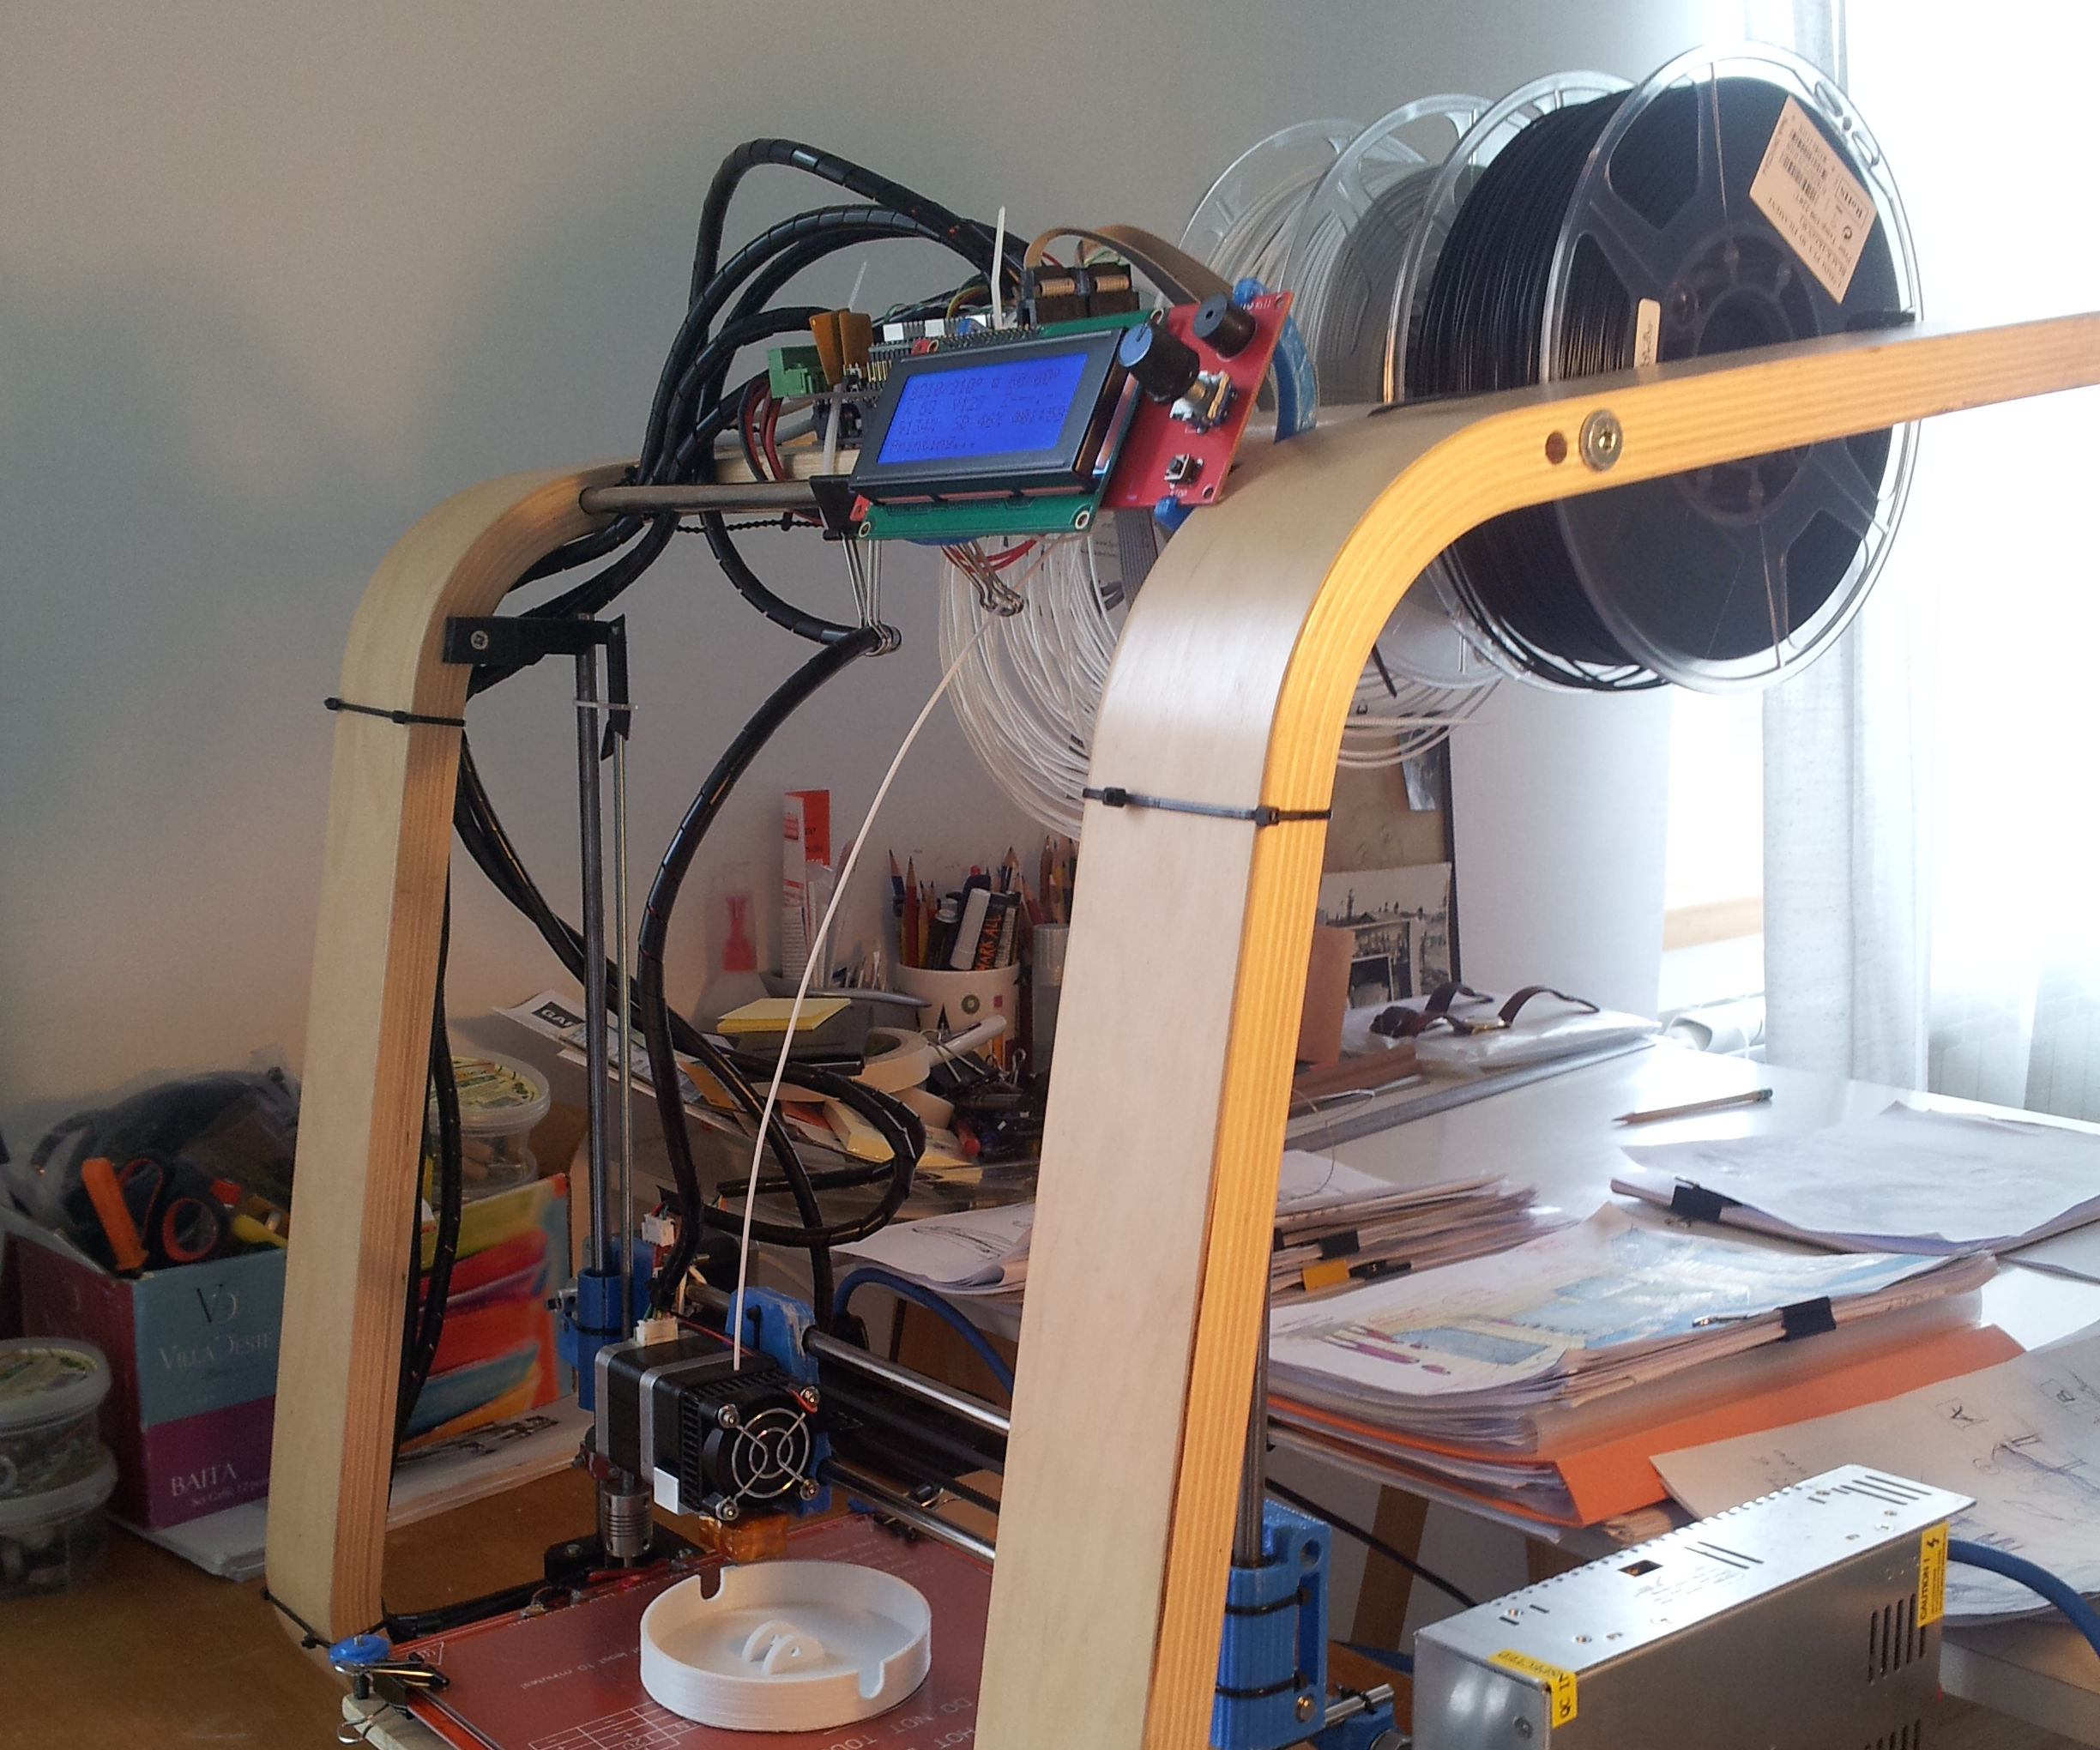 From an Ikea Footstool to (Poang) 3D printer!